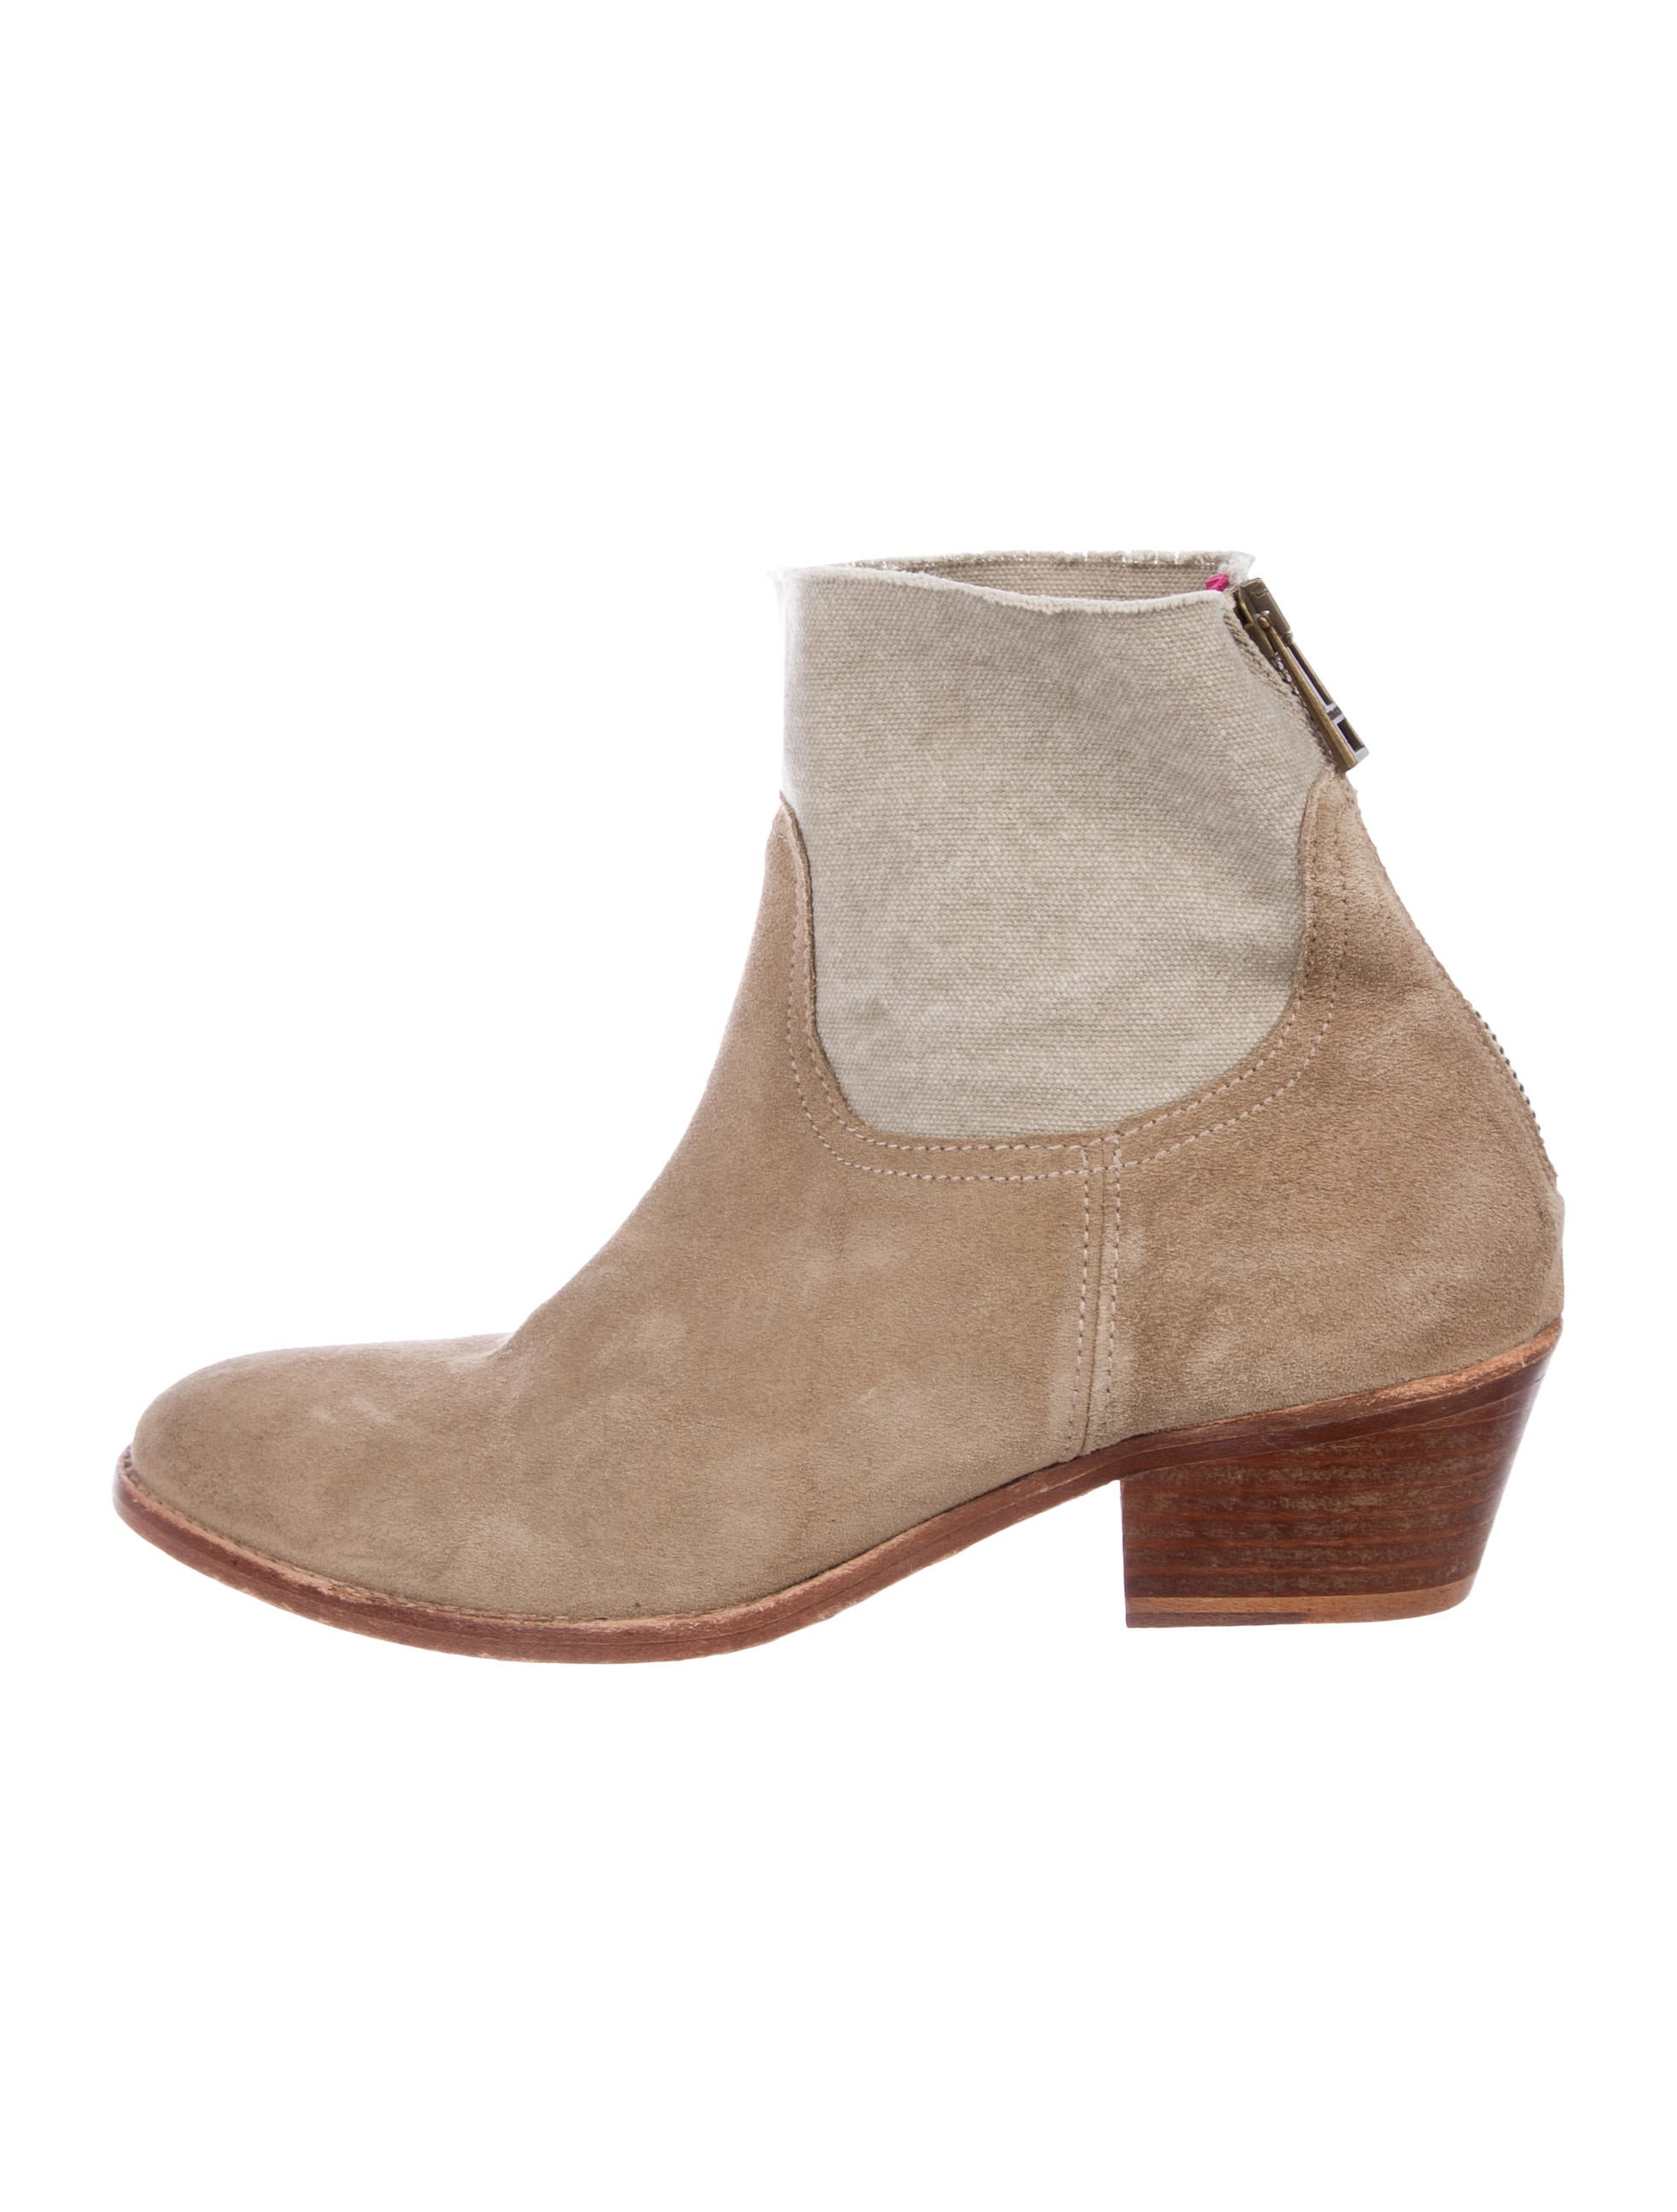 buy cheap manchester great sale Zadig & Voltaire Round-Toe Ankle Boots discount enjoy outlet for sale clearance online ebay hjScRZeqXD